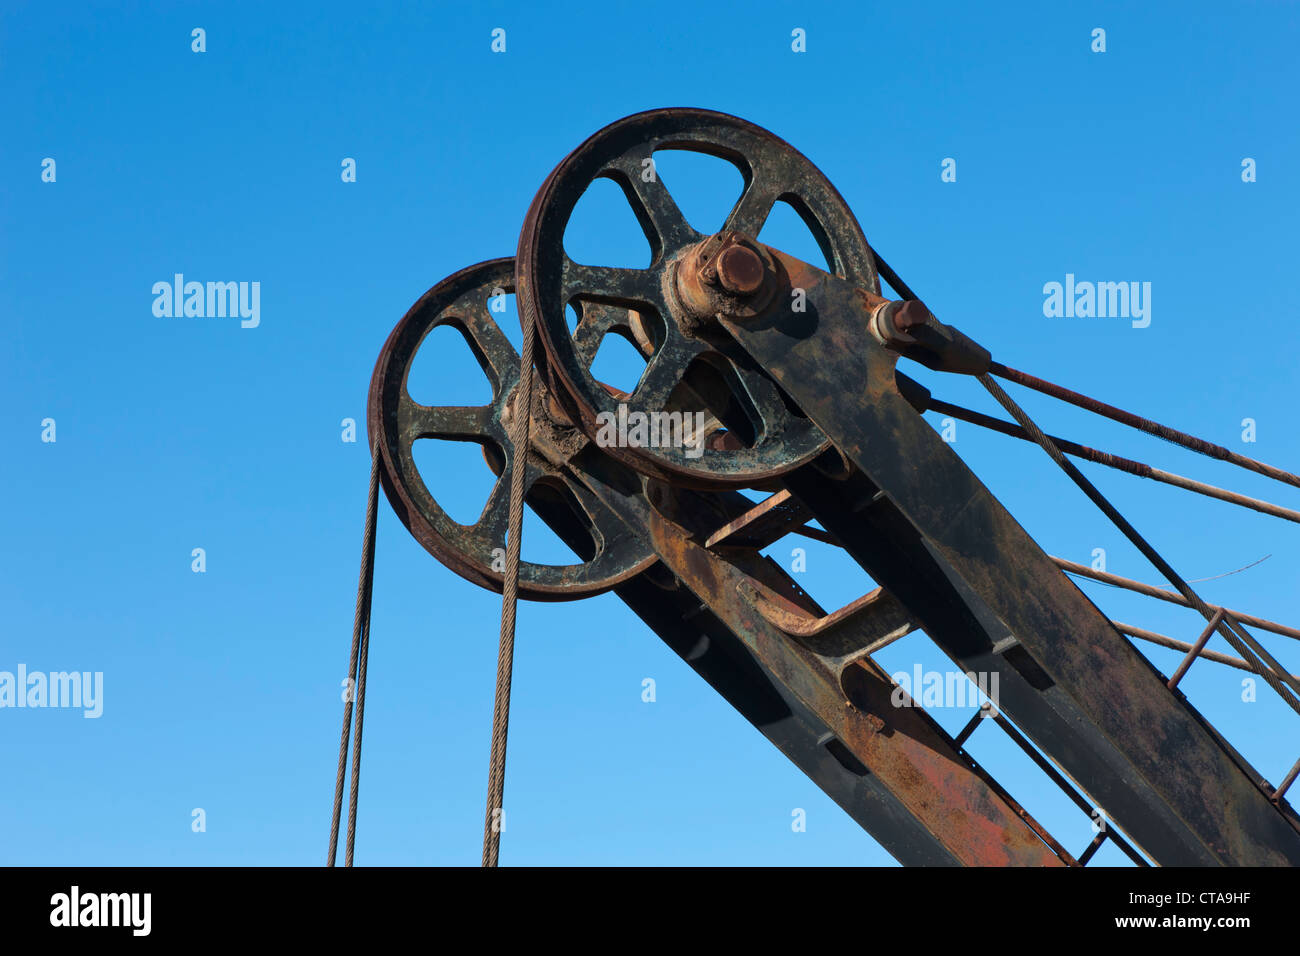 Detail of pulley system of discarded mechanical digger at Minas de Rio Tinto, Huelva Province, Andalusia, southern - Stock Image